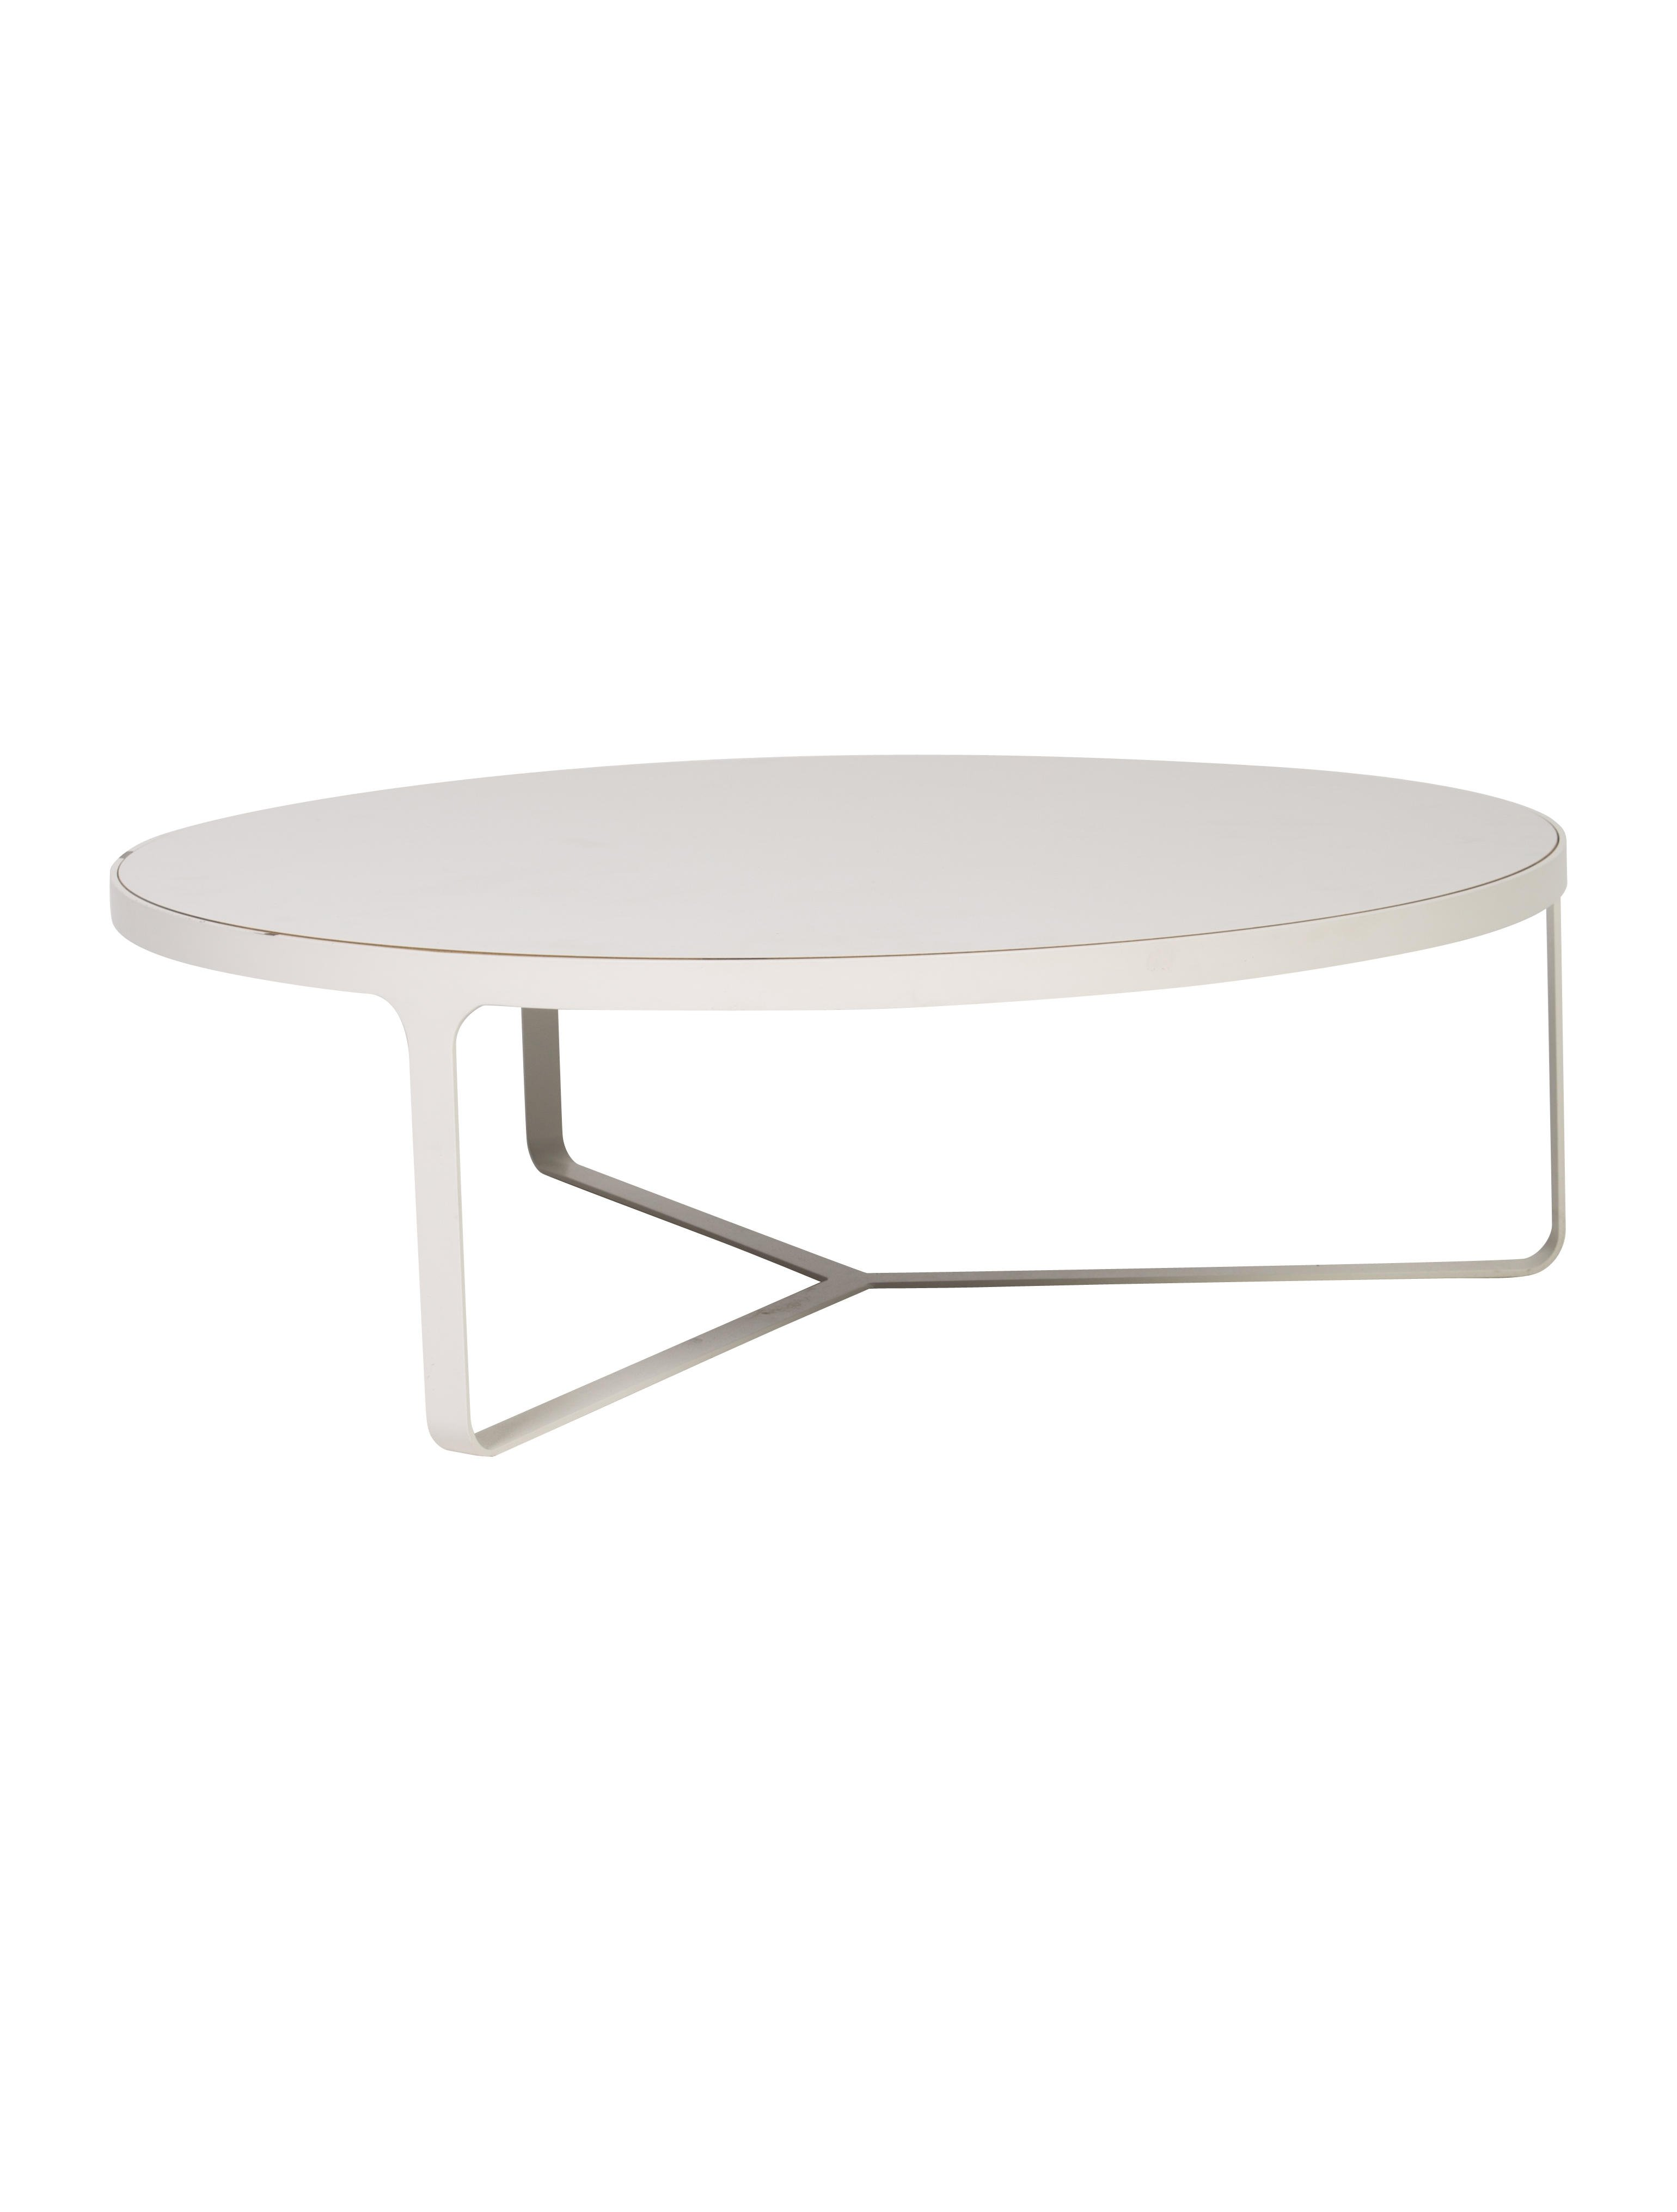 coffee table design within reach photo - 5